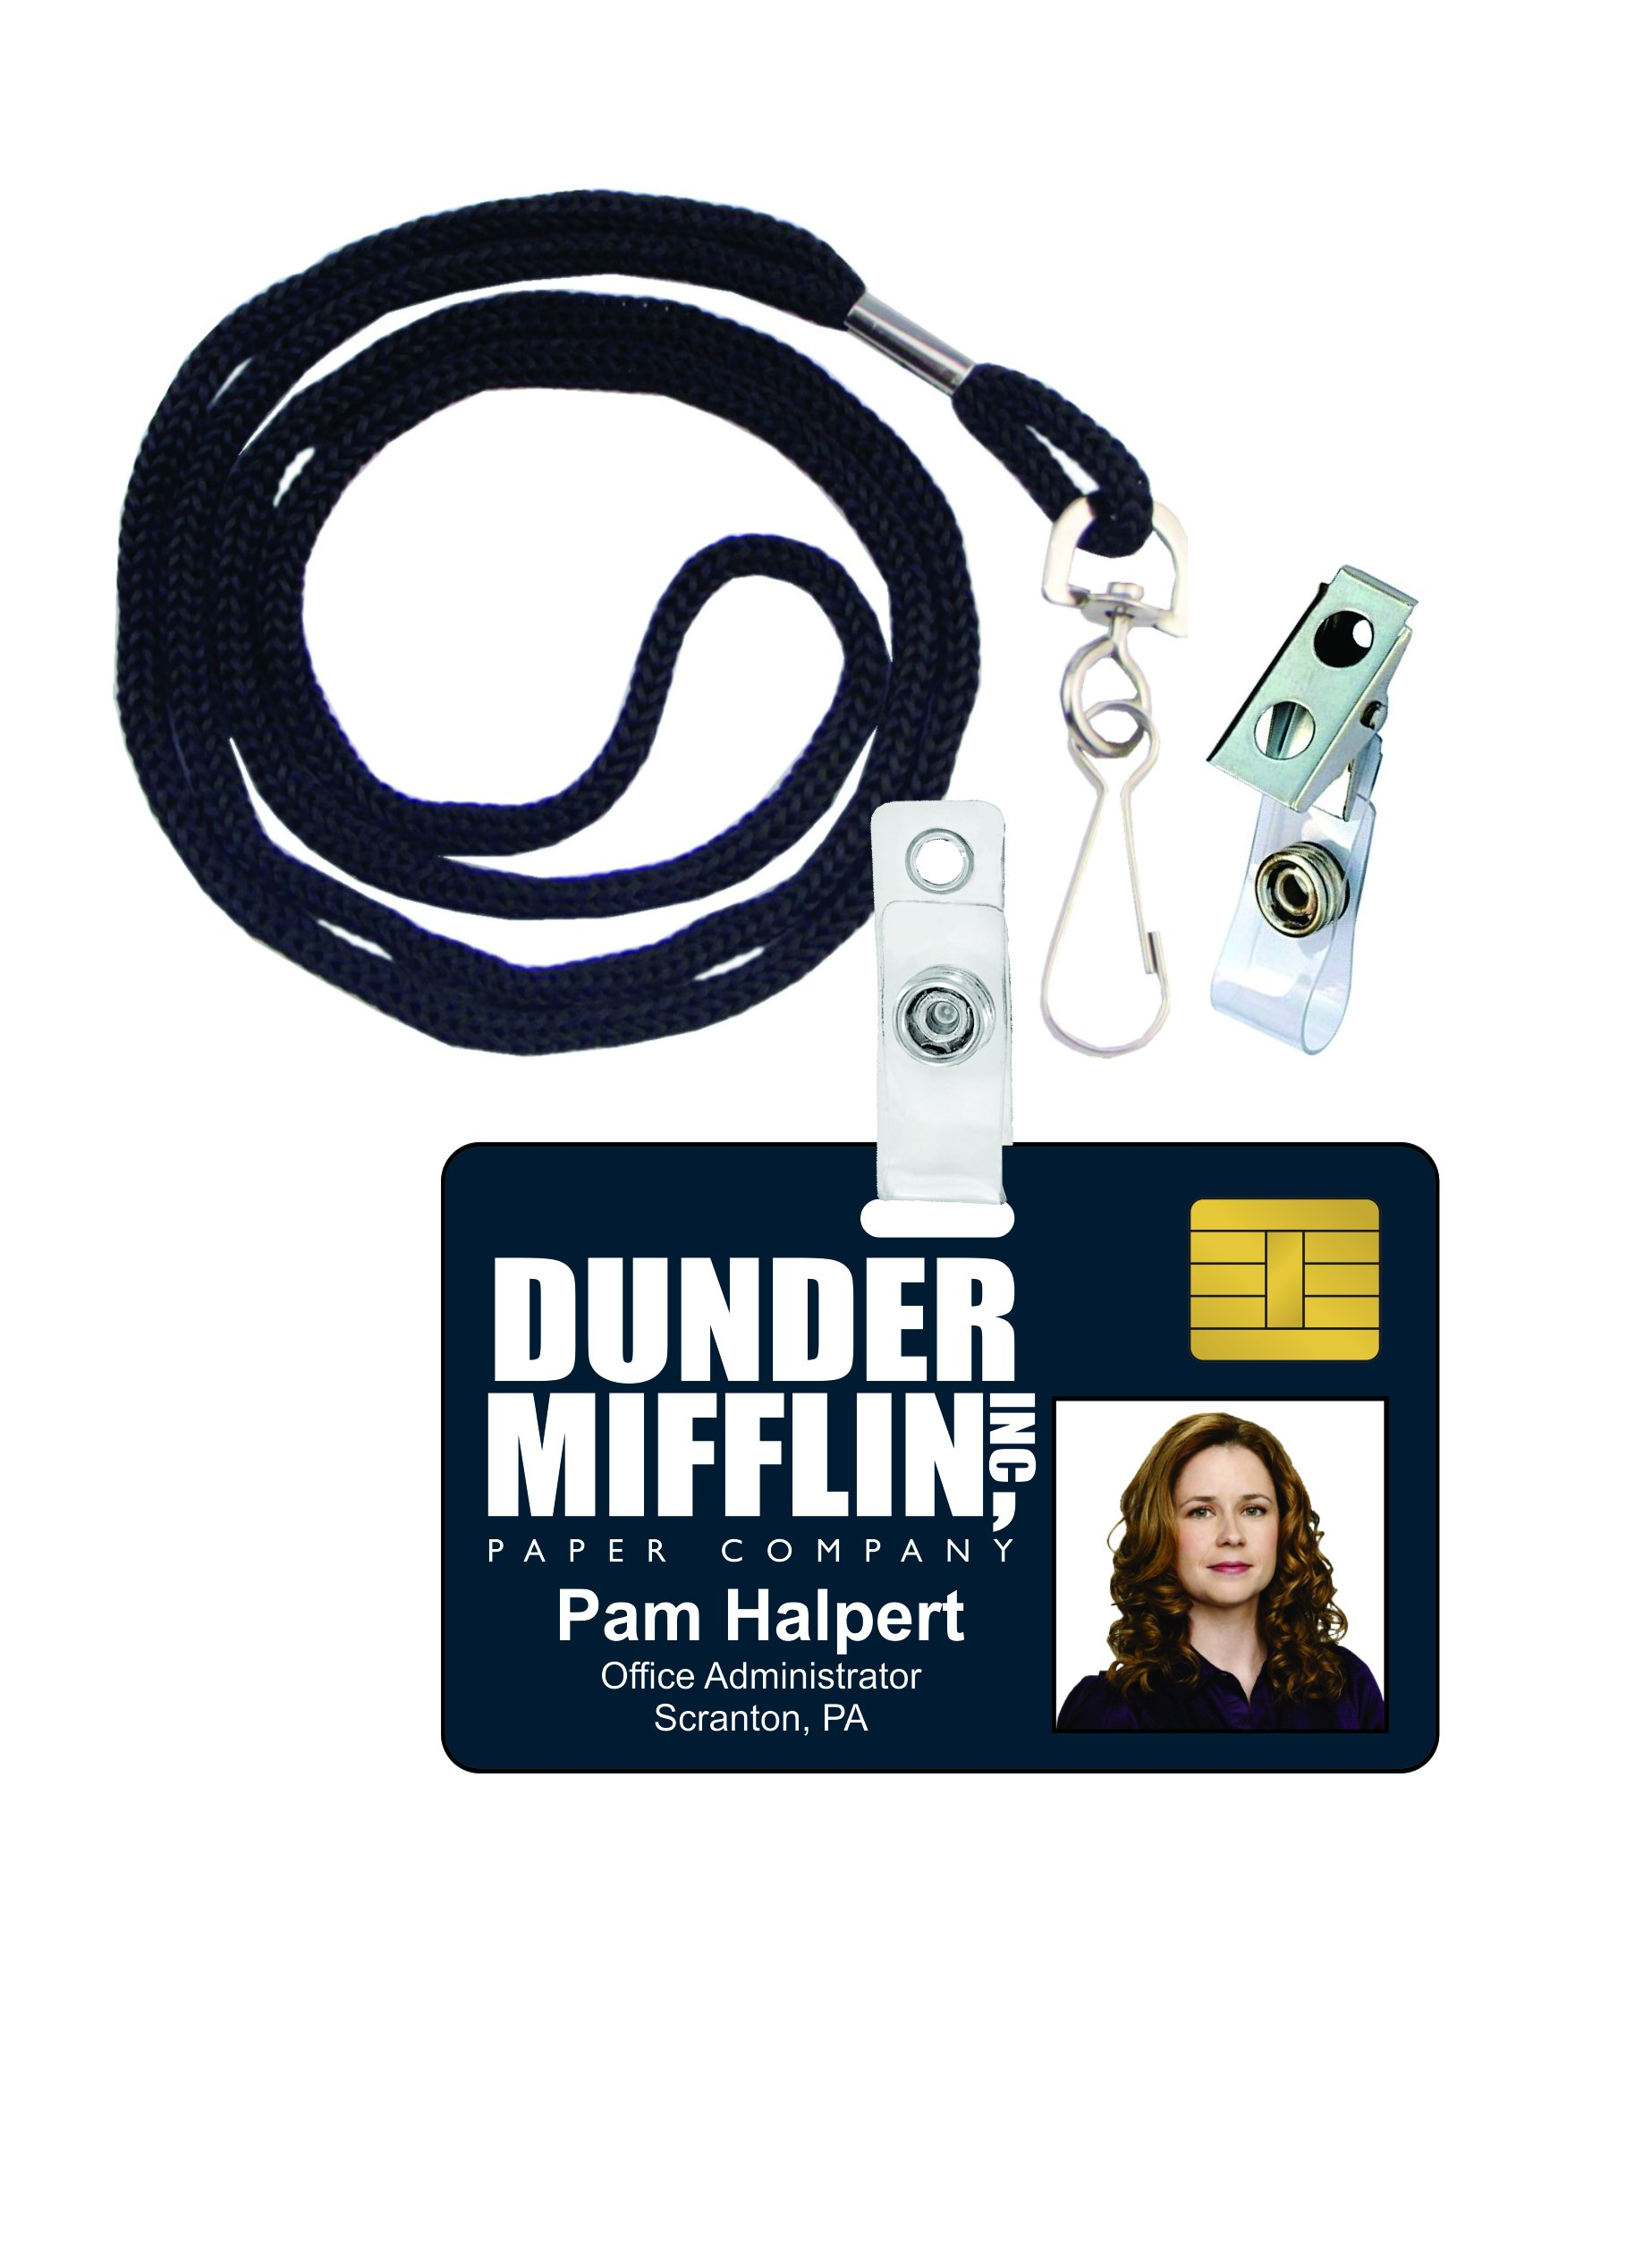 Pam Halpert The Office Novelty ID Badge Film Prop for Costume and Cosplay • Halloween and Party Accessories